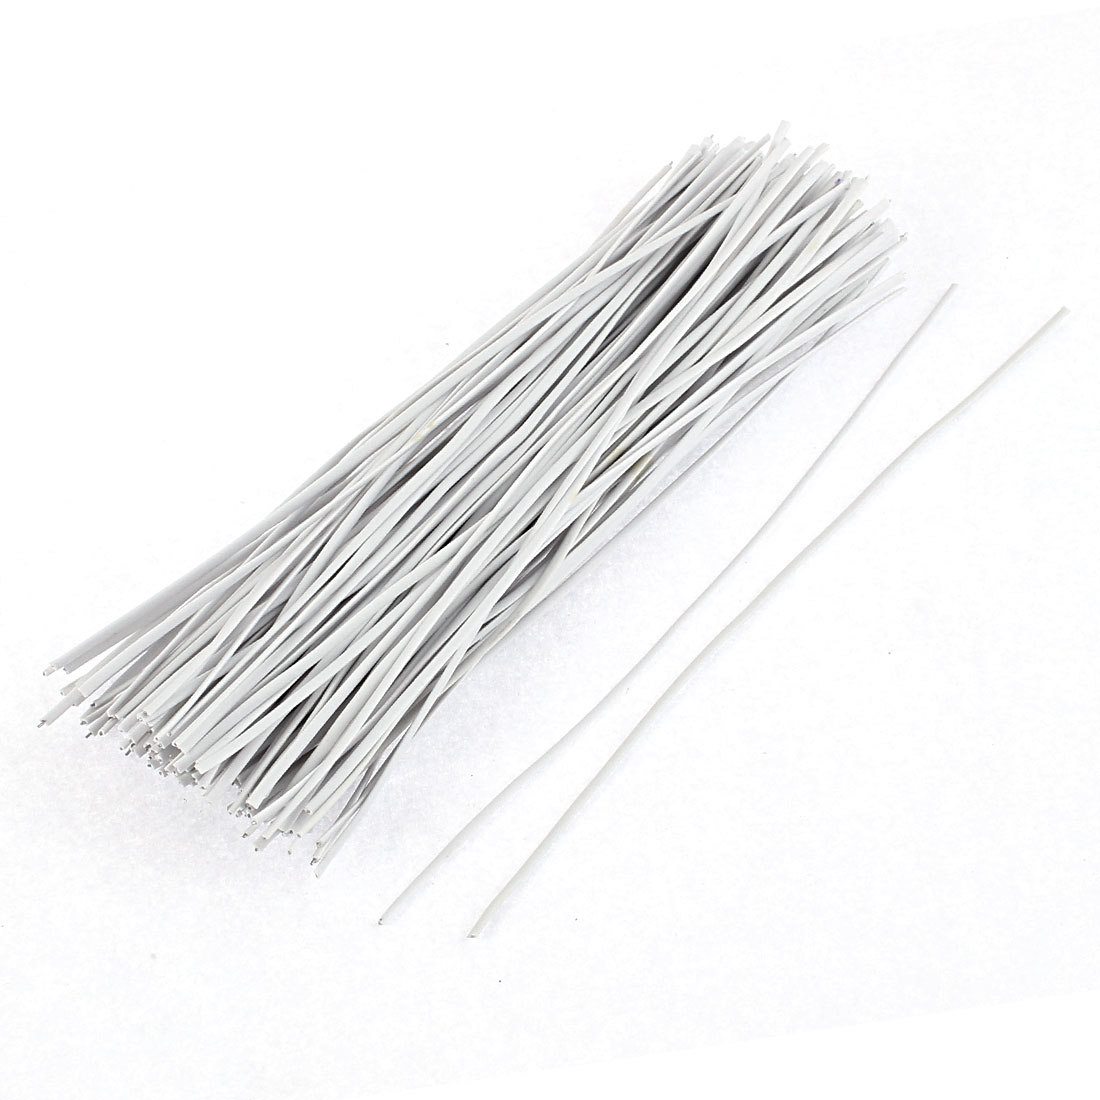 UXCELL 130Pcs 150Mm X 2Mm White Plastic Coated Metal Cord Data Cable Binding Organizer Bags Packaging Wire Twist Ties